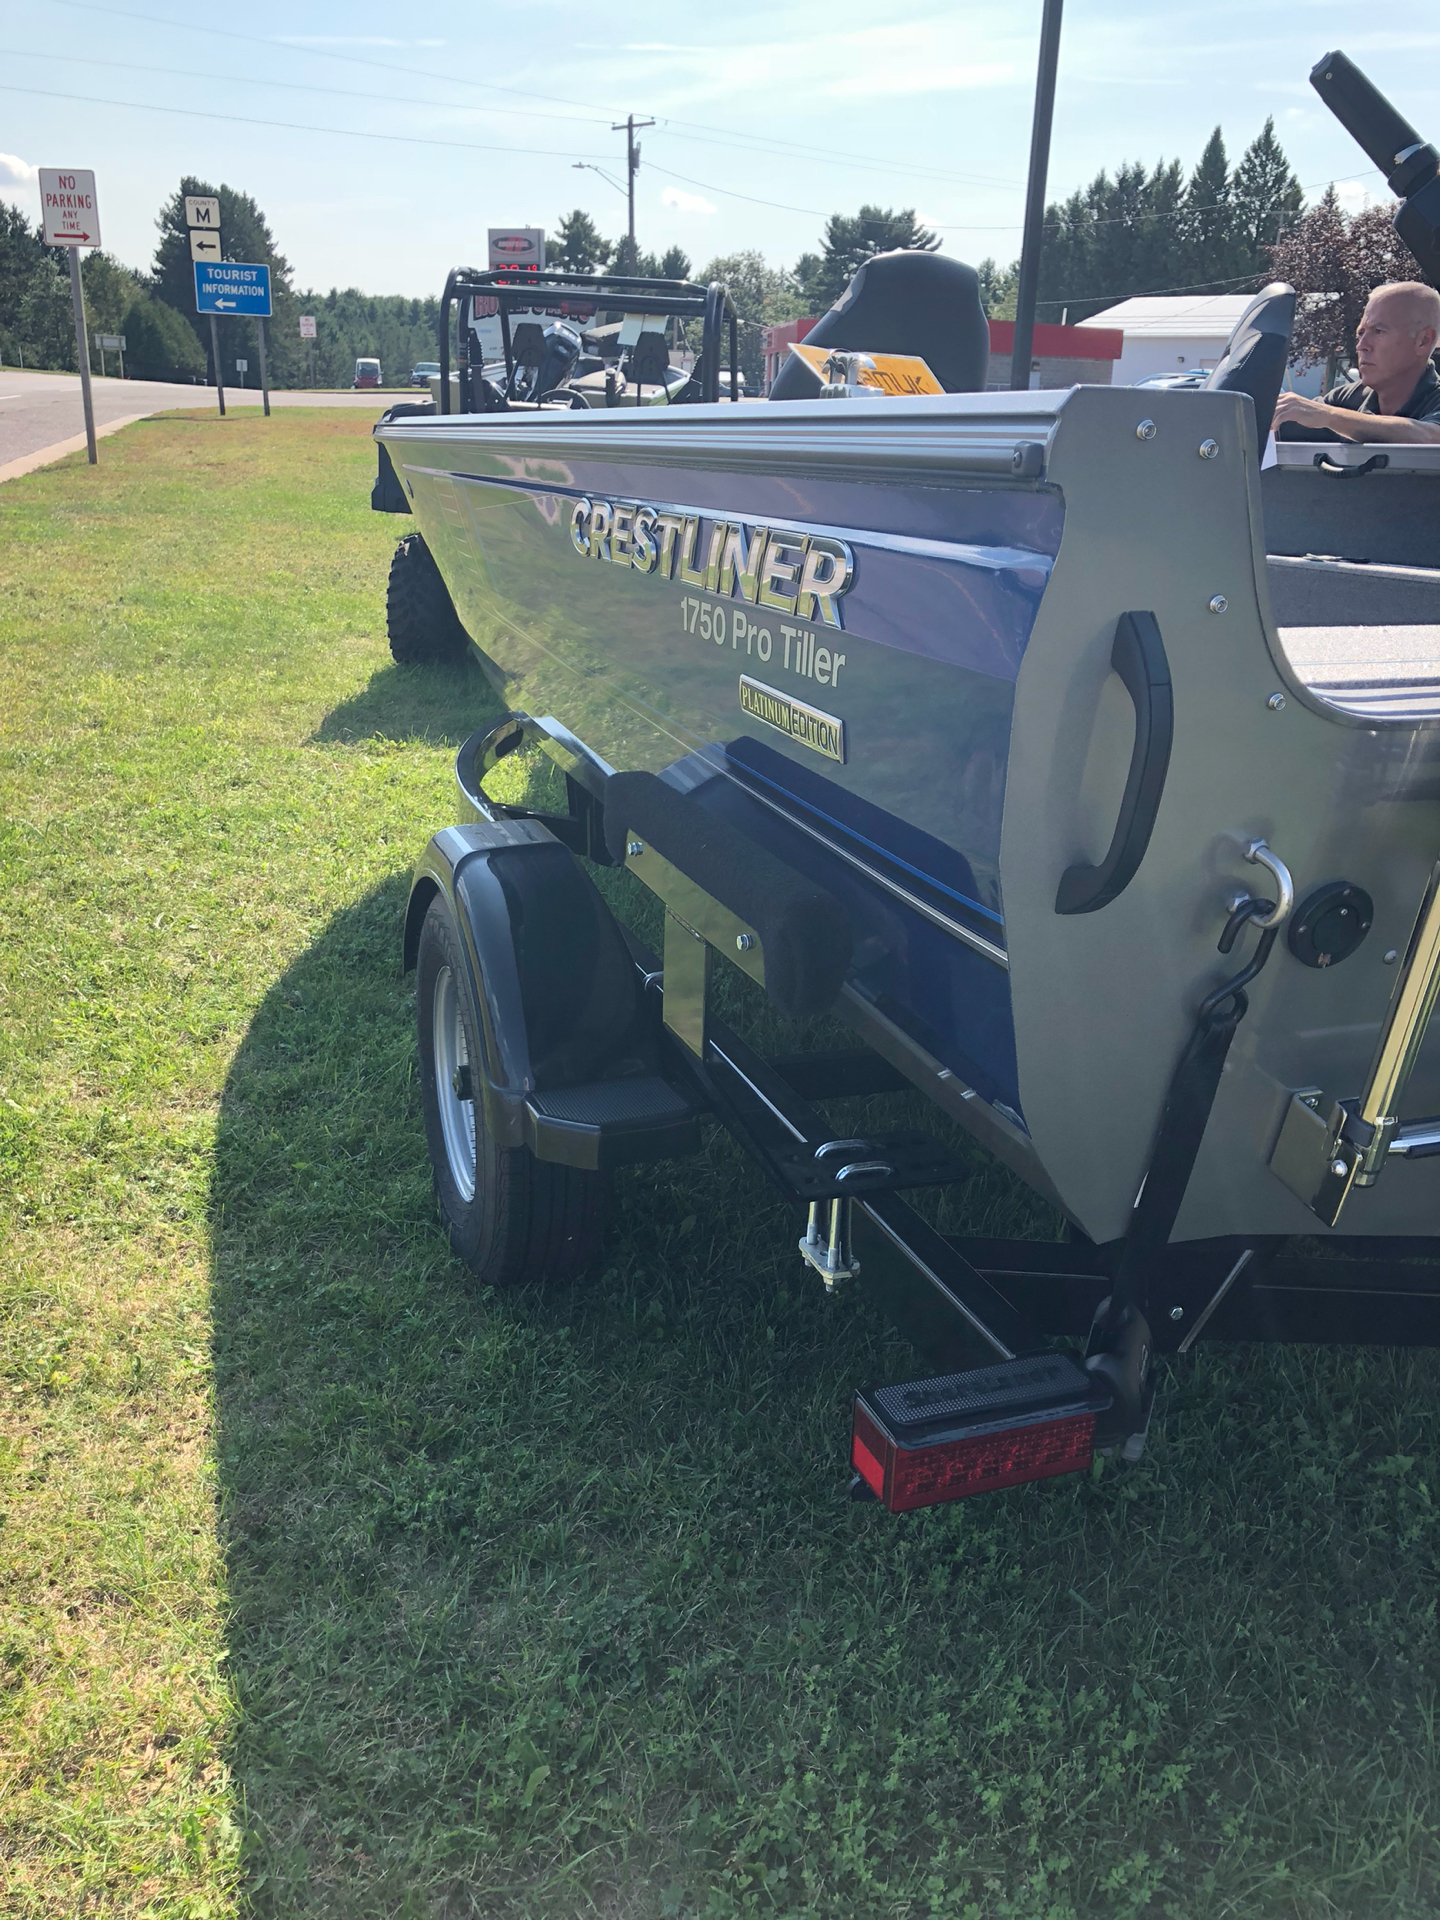 2018 Crestliner 1750 Pro Tiller in Cable, Wisconsin